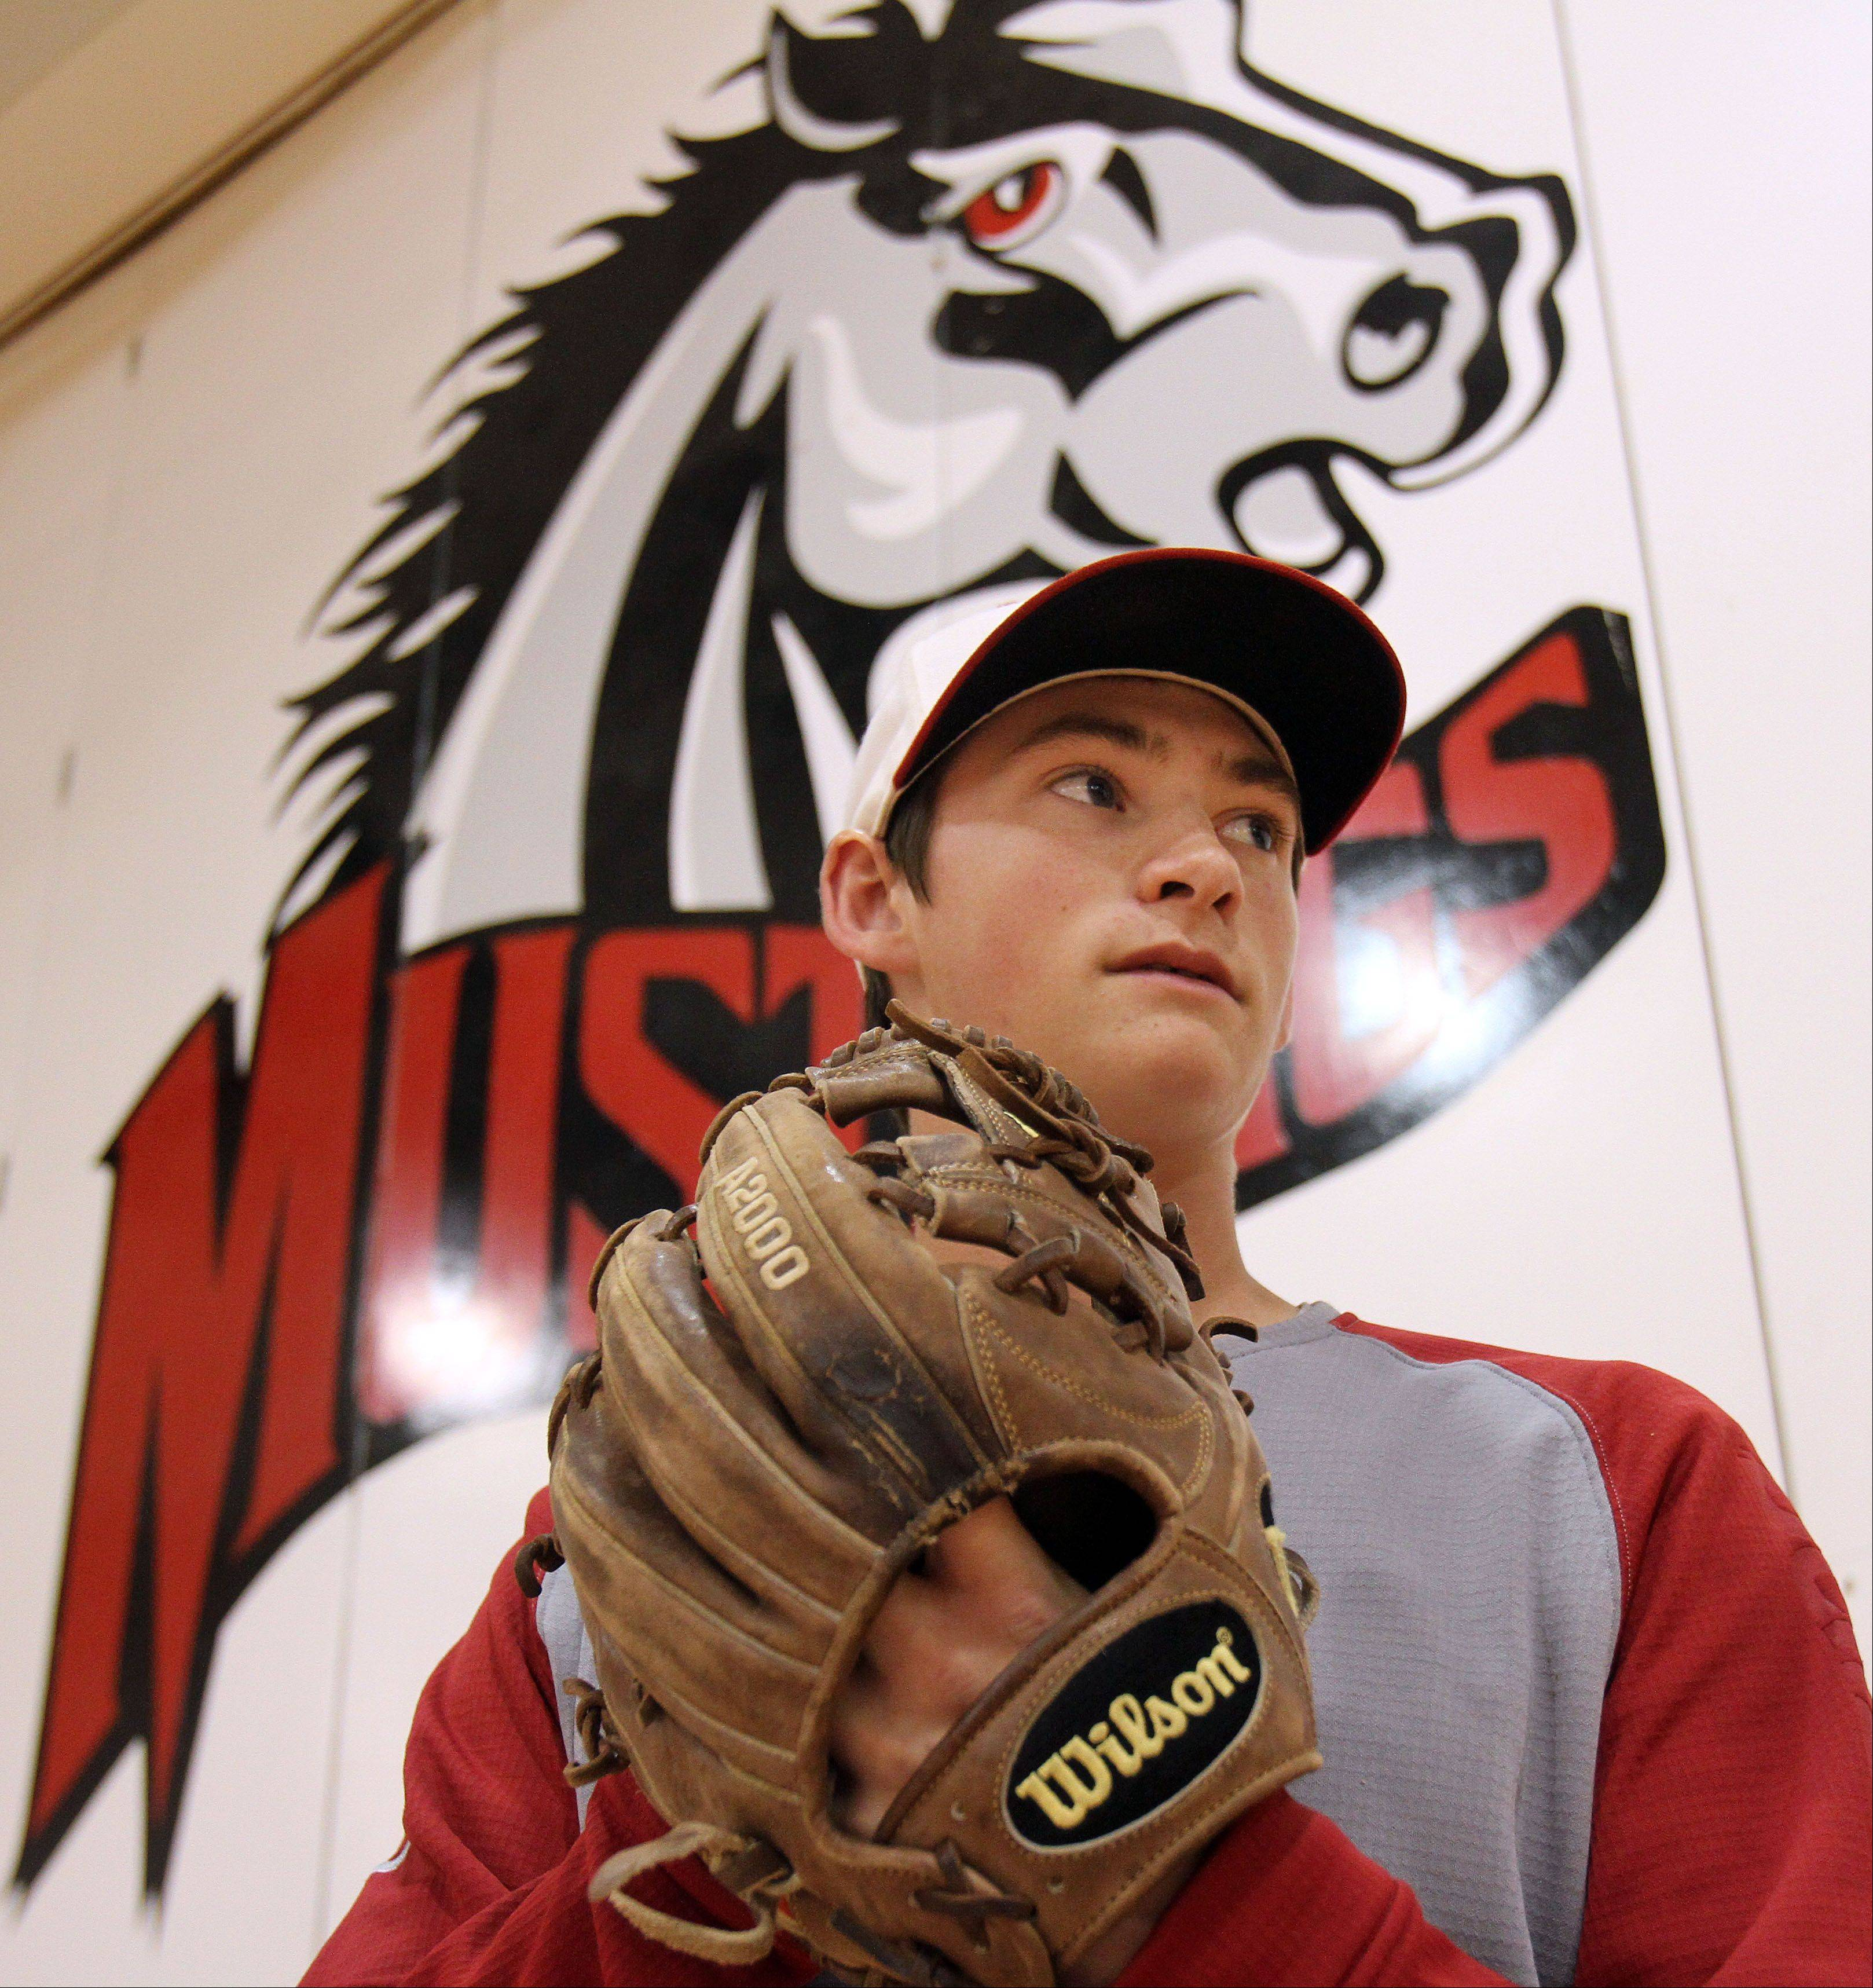 Mundelein pitcher Mitch Schulewitz has had a great start to the year at 5-0, partly due to his becoming a true student of the game — and his opponents.